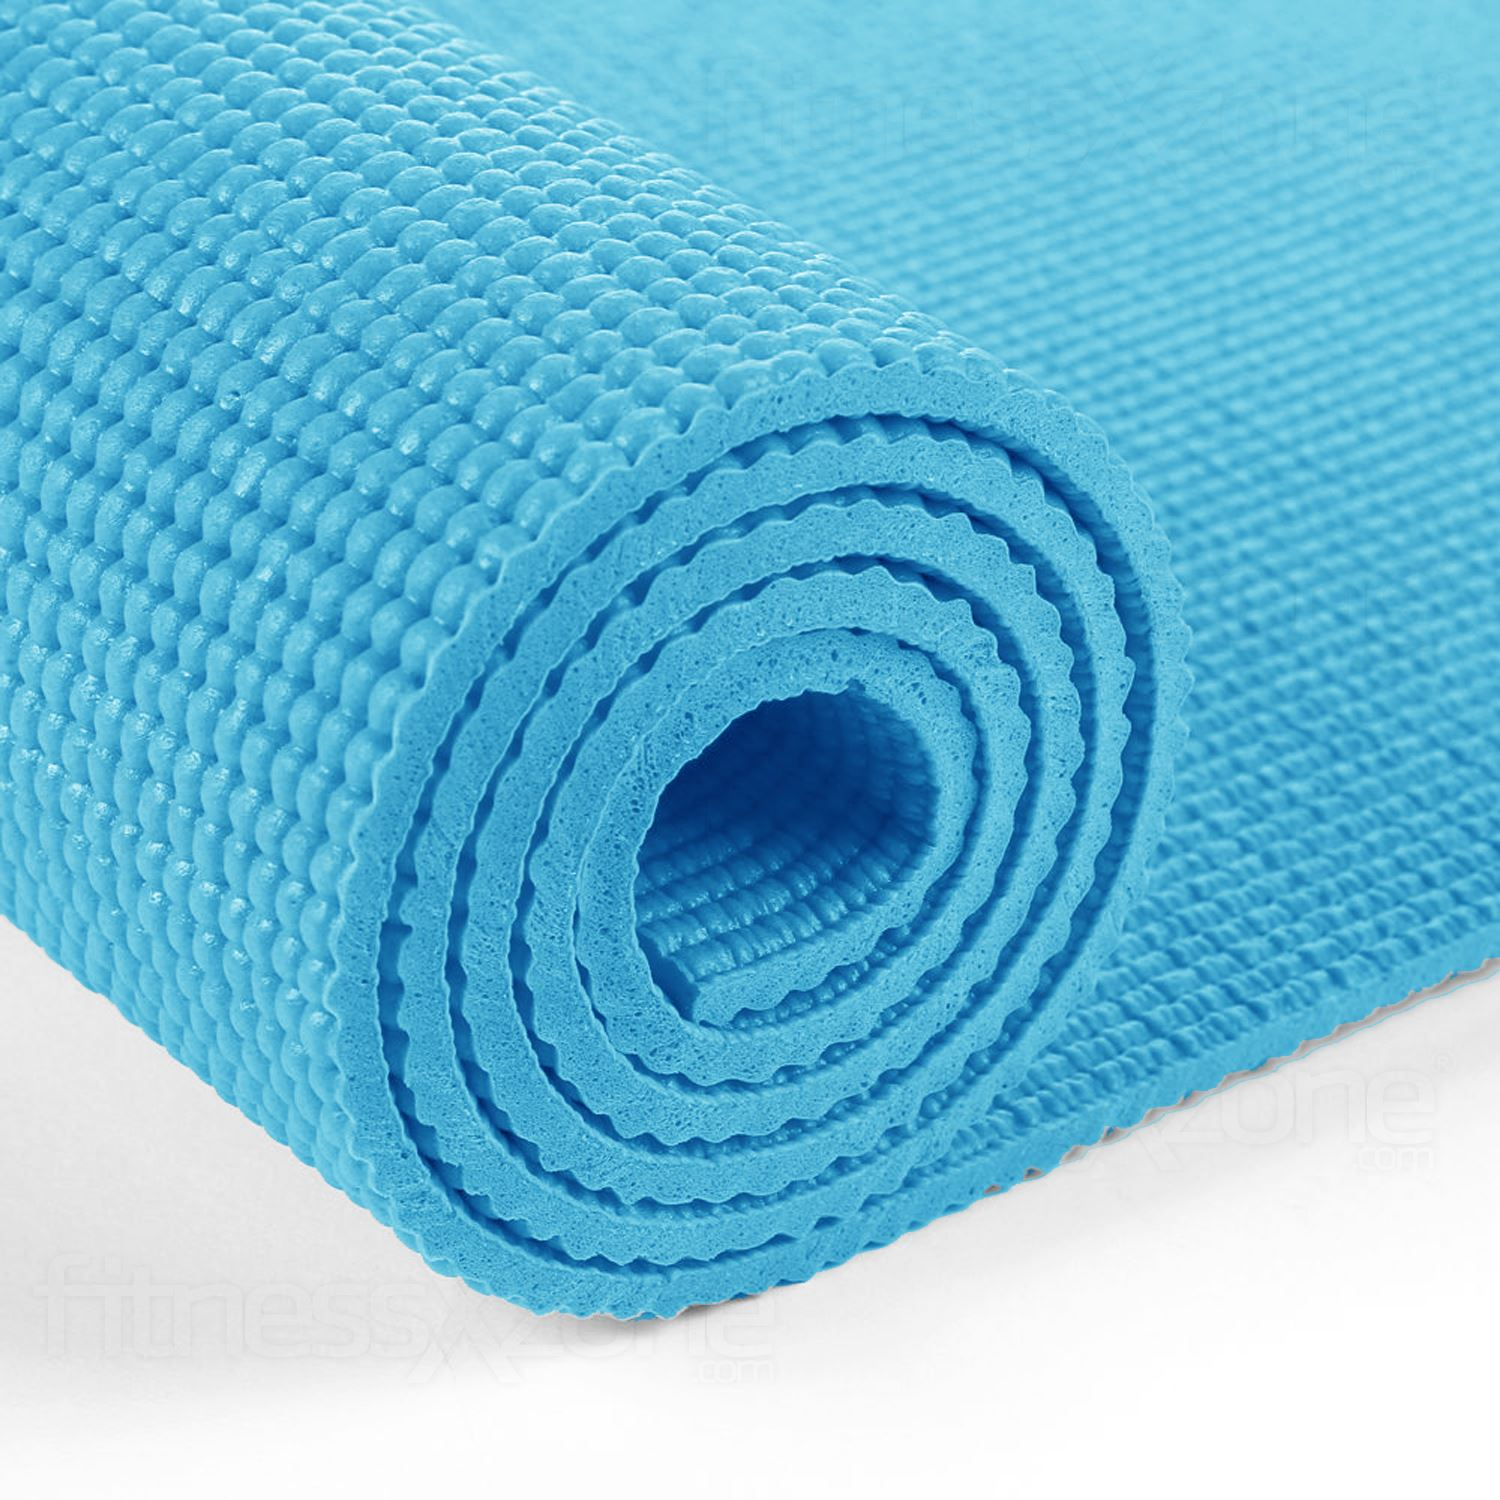 Yoga-Mat-EXTRA-THICK-6mm-173cm-x-61cm-Non-Slip-Exercise-Gym-Camping-Picnic